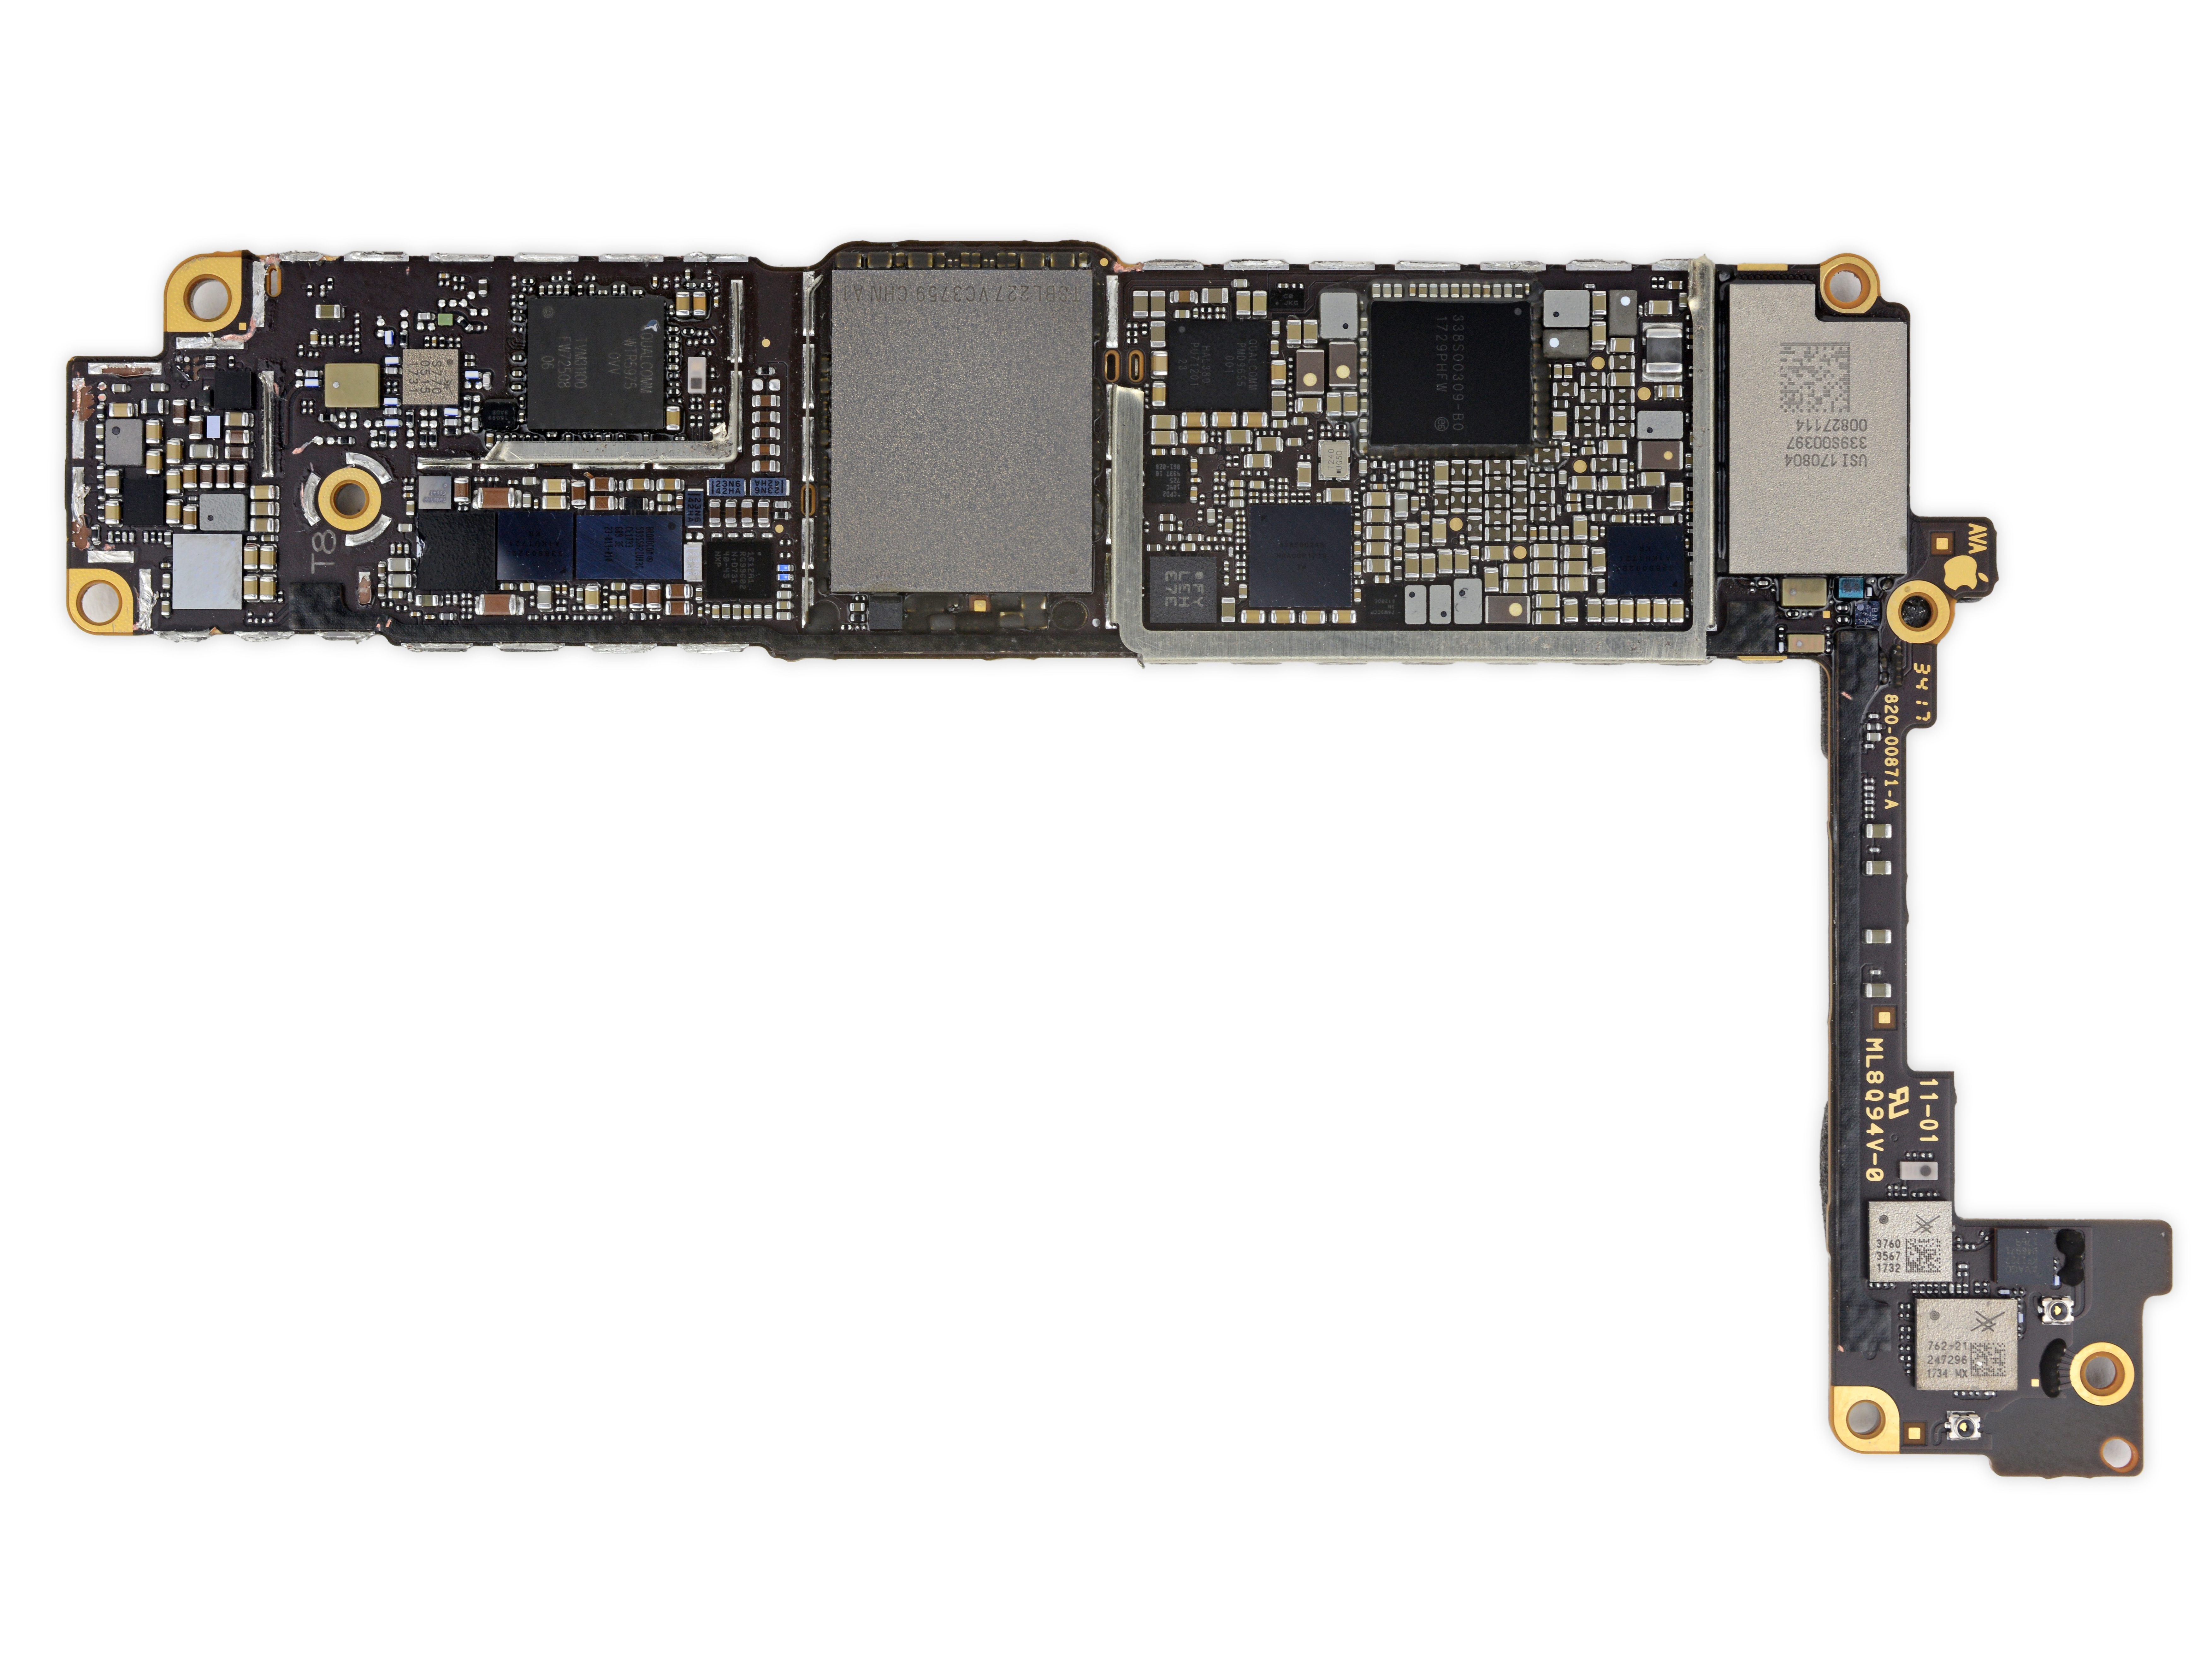 Placa base del iPhone 8